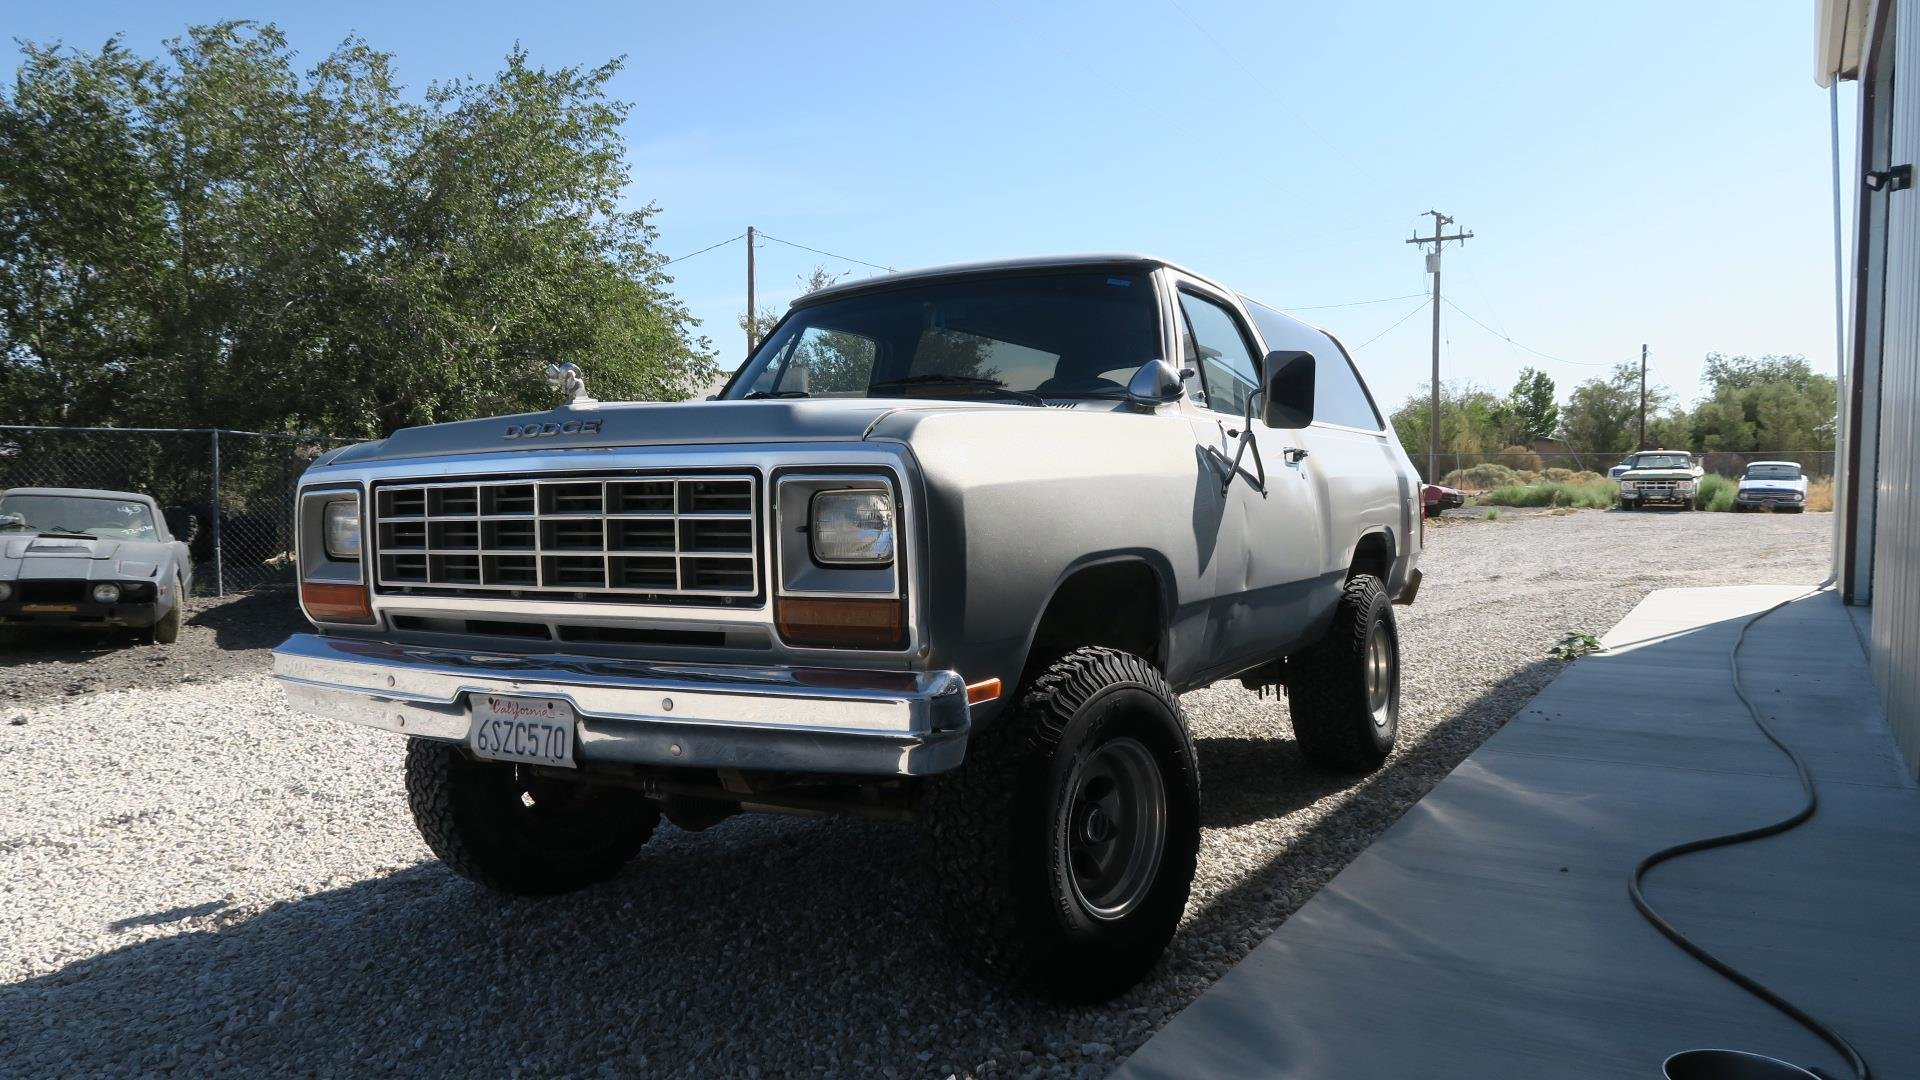 1984 Dodge Ram Charger 360 V8 4X4 Silver 50k miles AT $7.9k For Sale (picture 2 of 6)